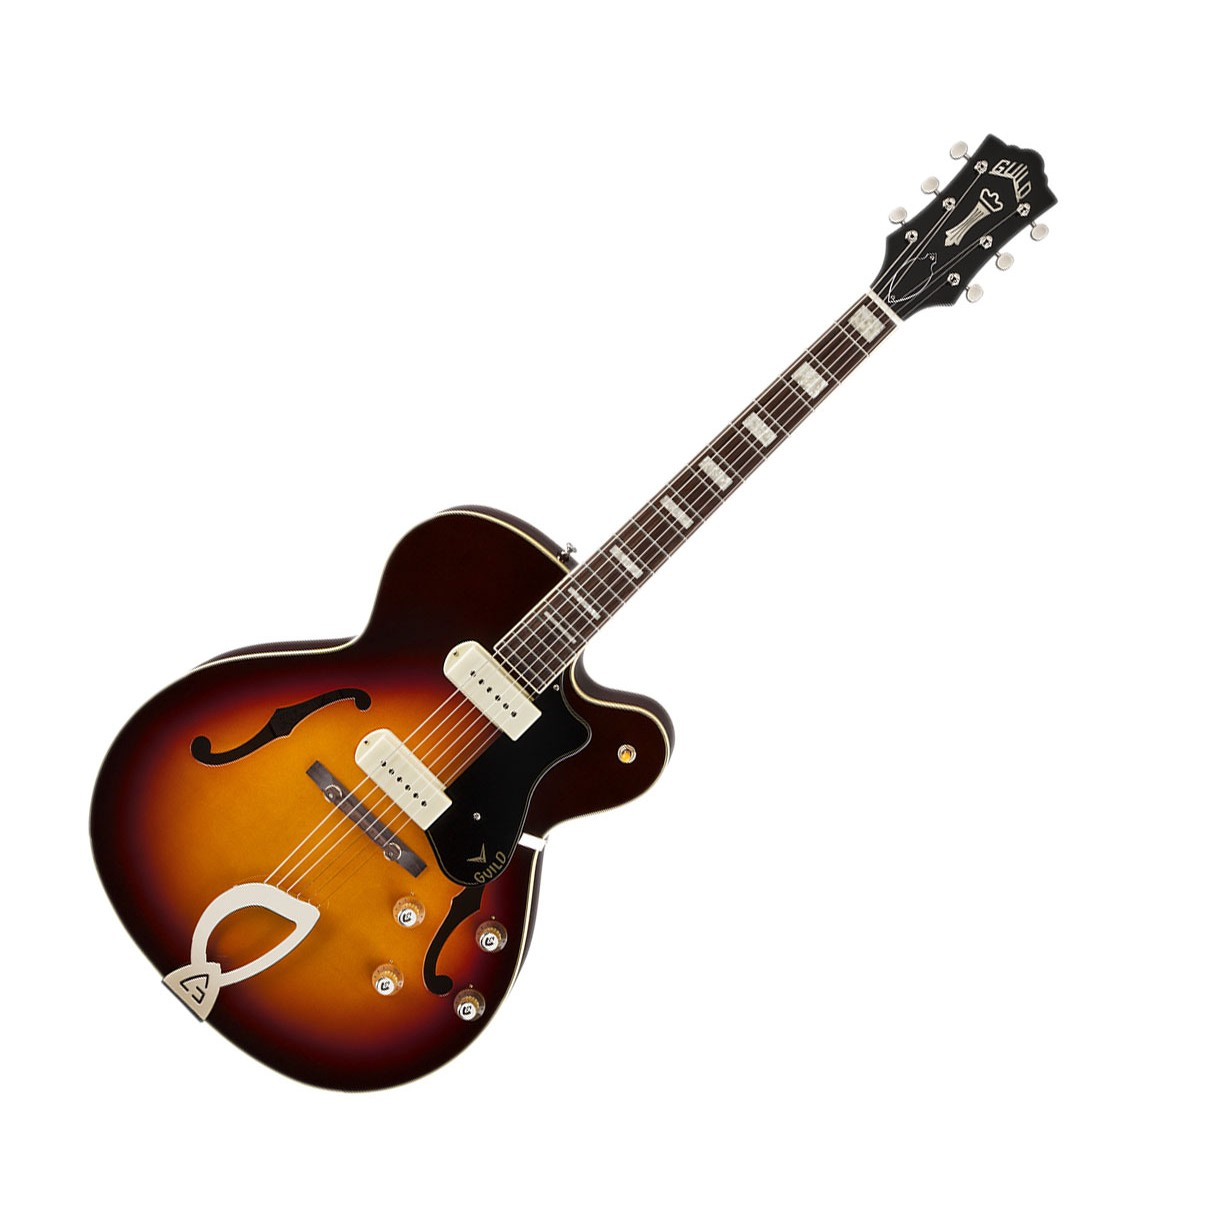 GUILD X-175 MANHATTAN ANTIQUE BURST - 3795000837